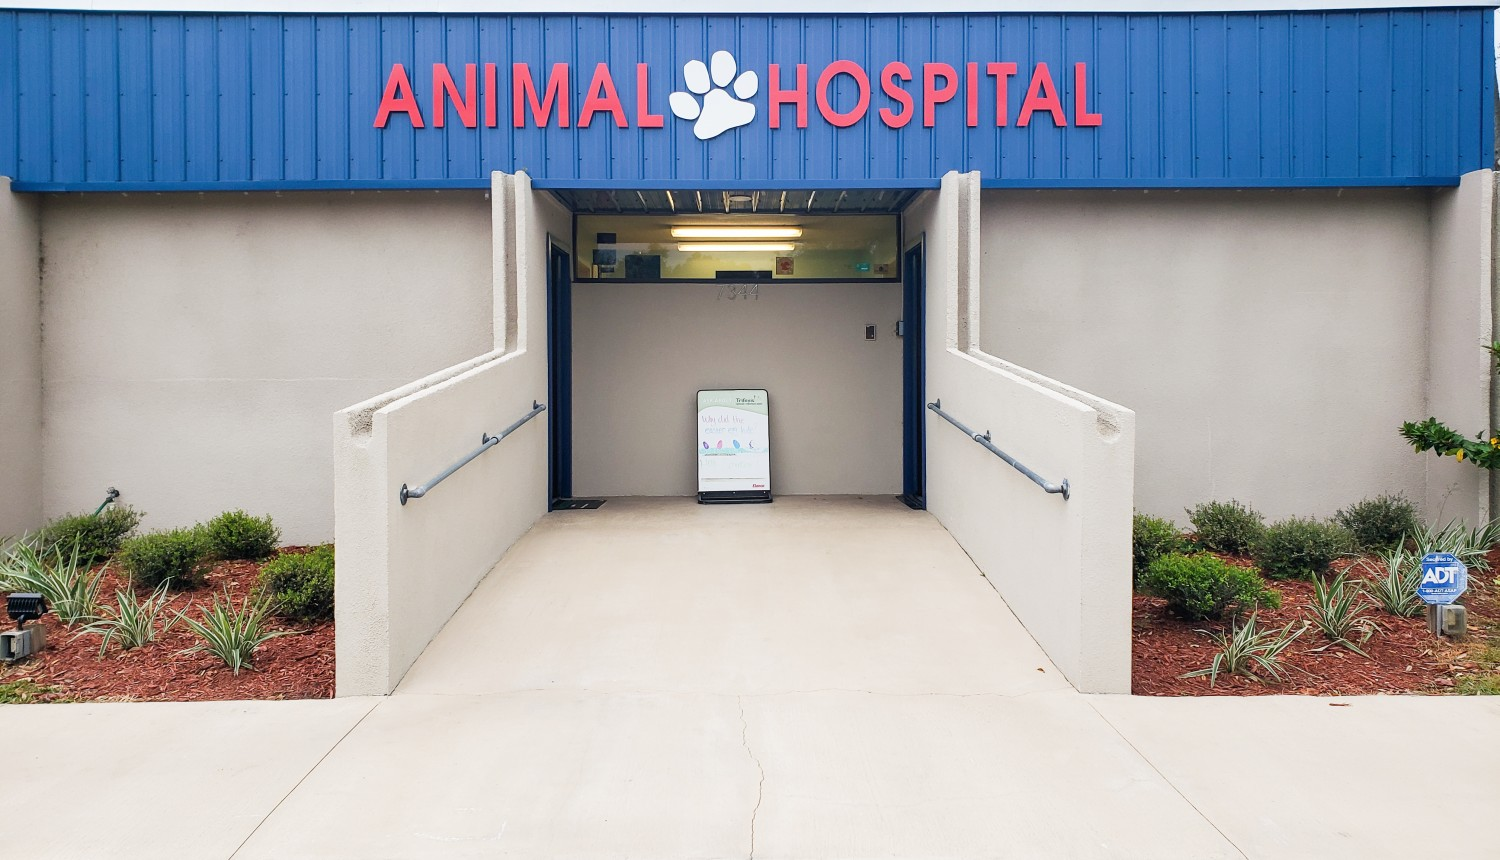 Keyston Heights Animal Hospital - Veterinarian serving Keystone Heights, Melrose, Hawthorne, and Starke FL - Welcome to our site!